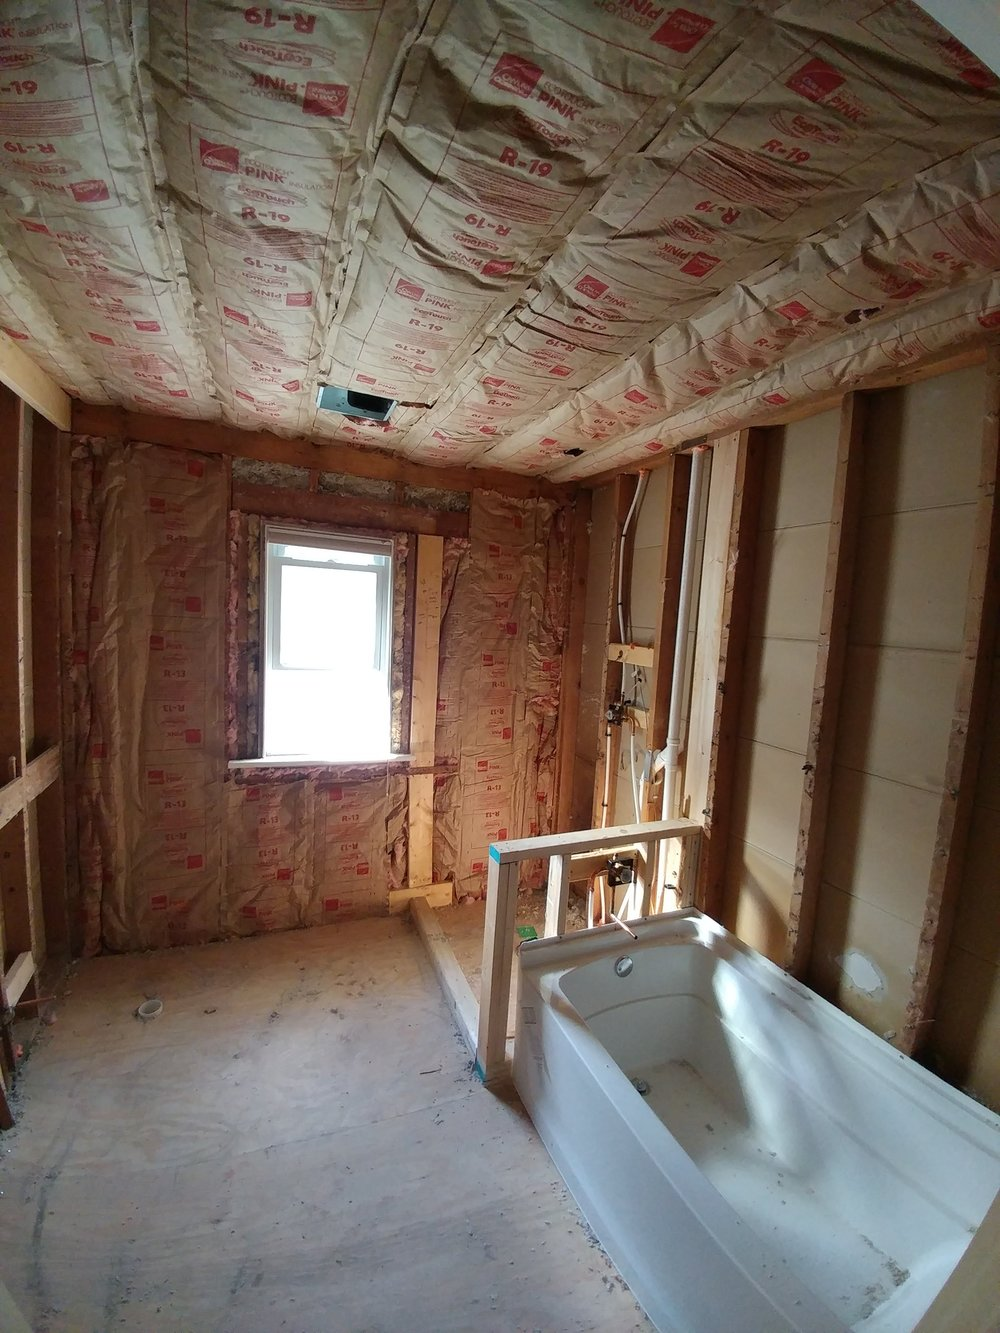 20170929_144846_HDR  Insulation.jpg